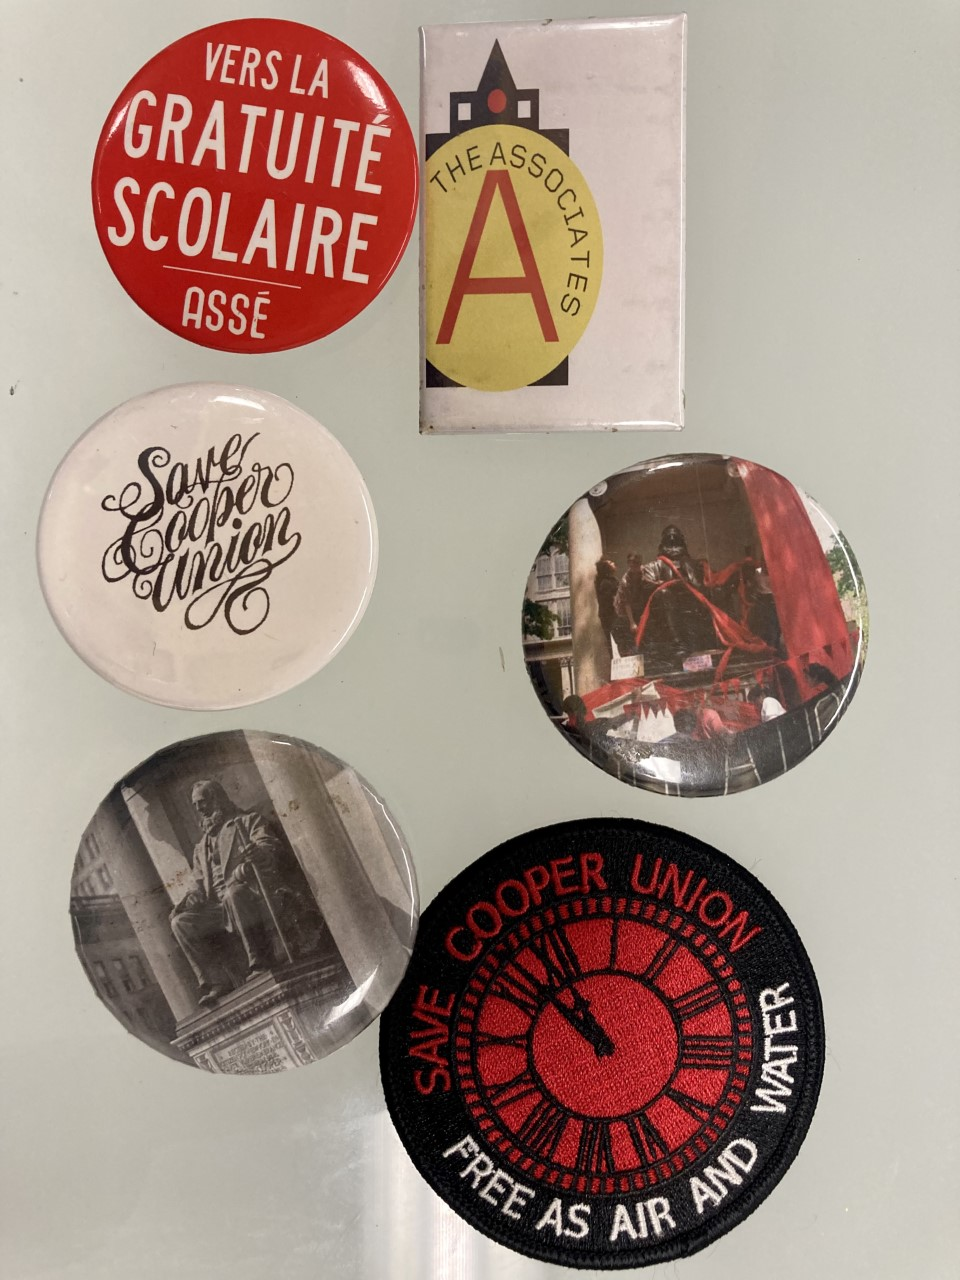 Cooper tuition protest pins